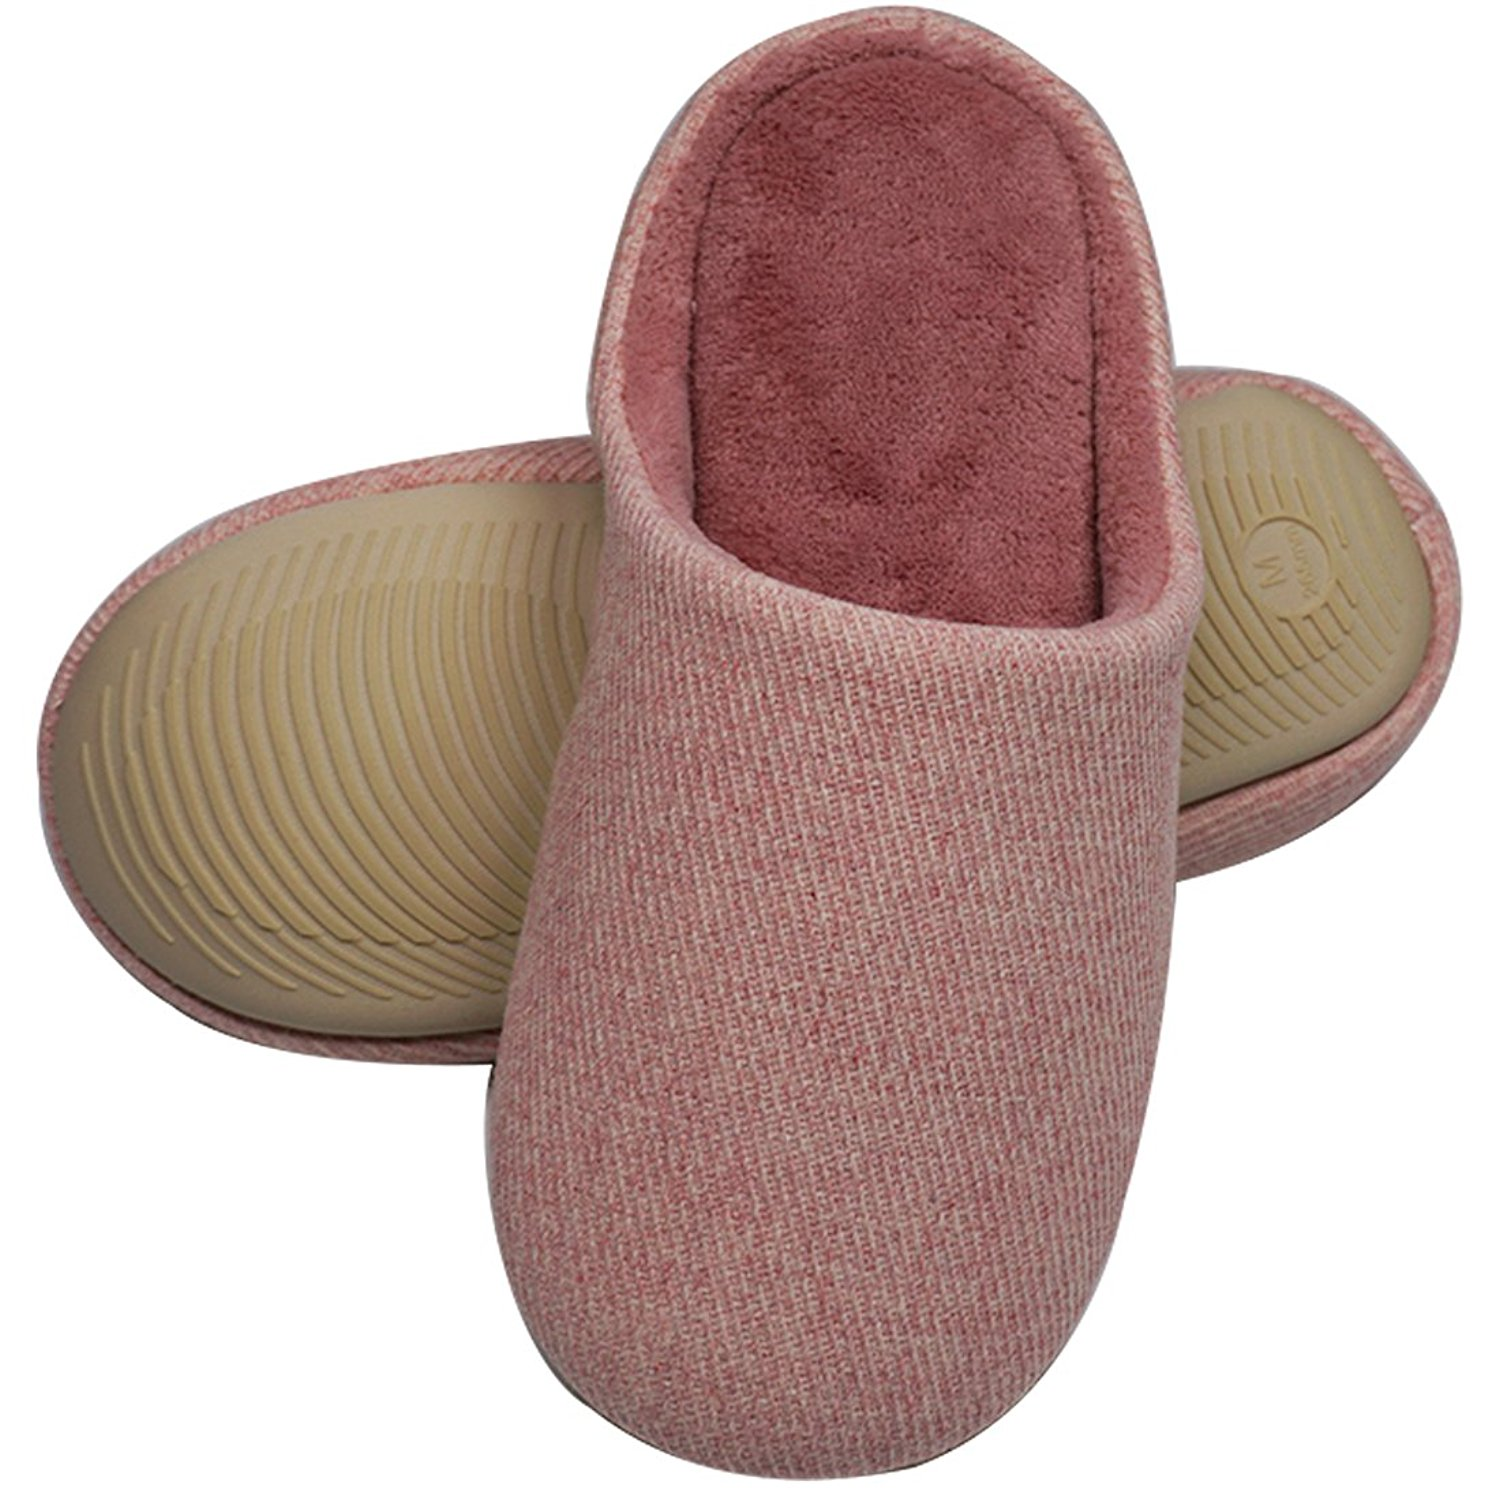 1cc9cda17dc Get Quotations · ZORALA Women   Men Slippers - Cashmere   Cotton Blend  Household Shoes - Solid   Striped